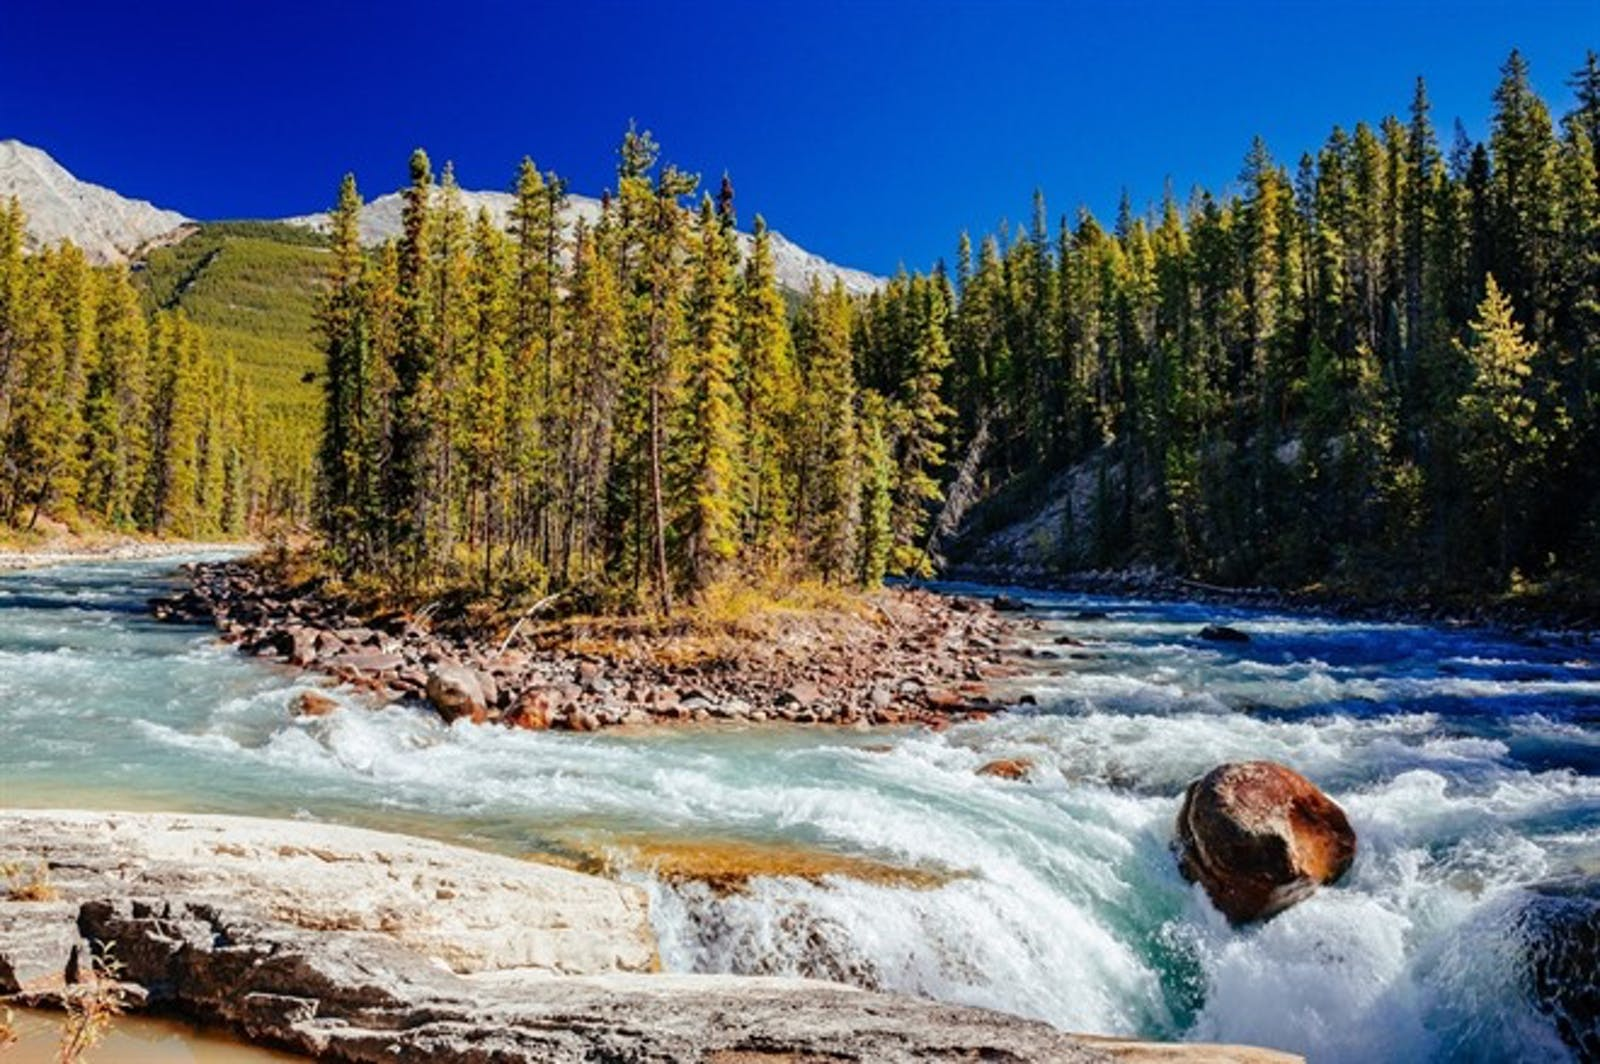 Sunwapta River, Jasper National Park